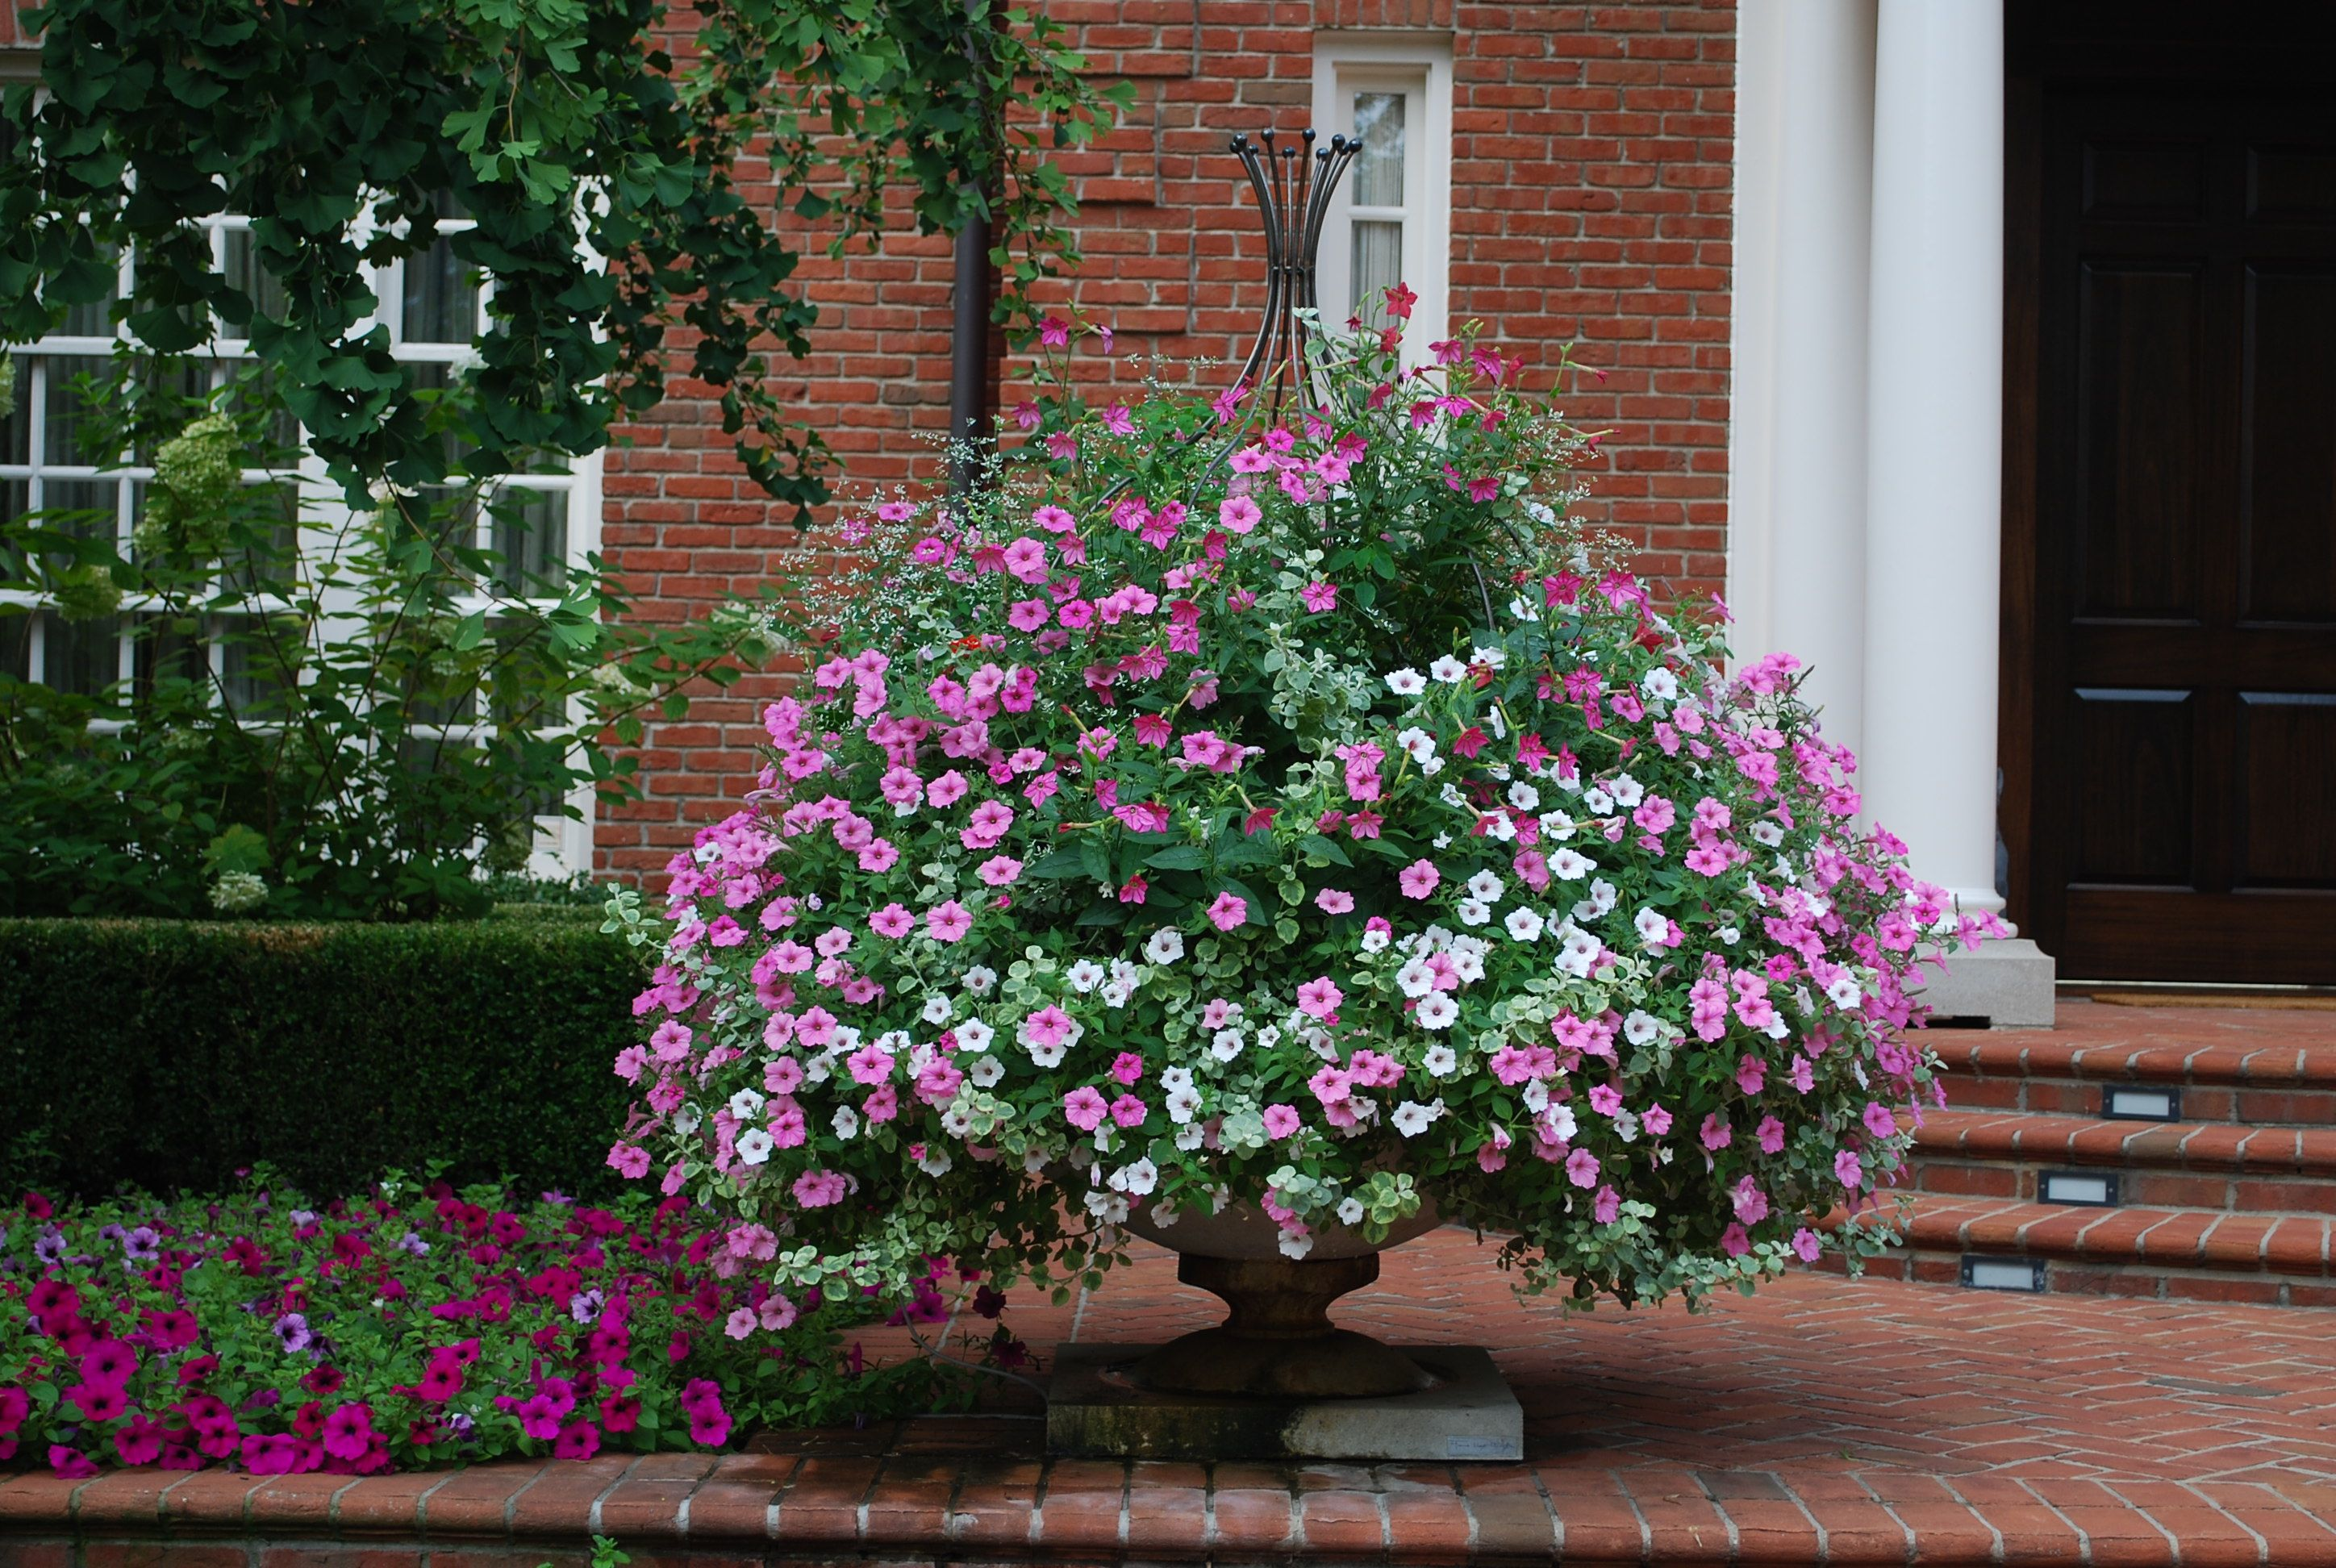 Container gardening 101 big results in small spaces for Best plants for container gardening